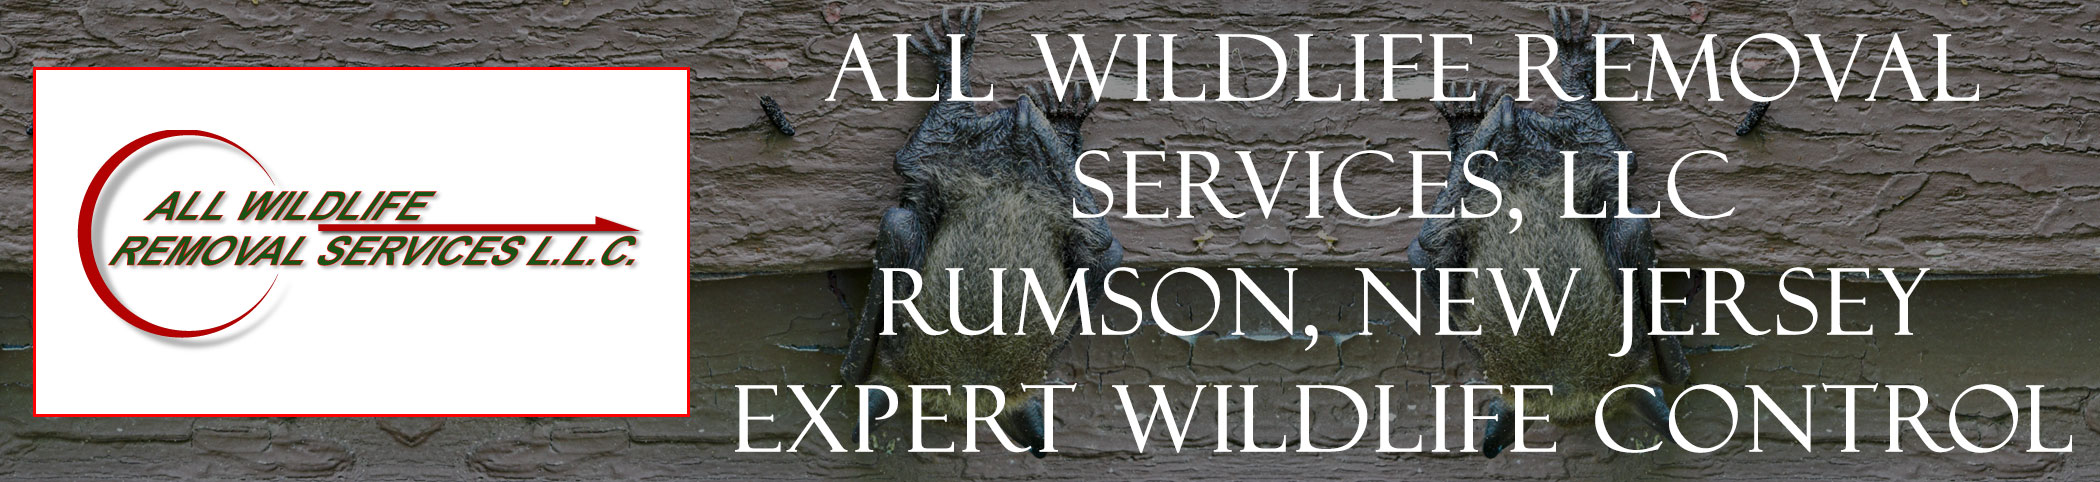 all-wildlife-removal-services-Rumson-new-jersey-header